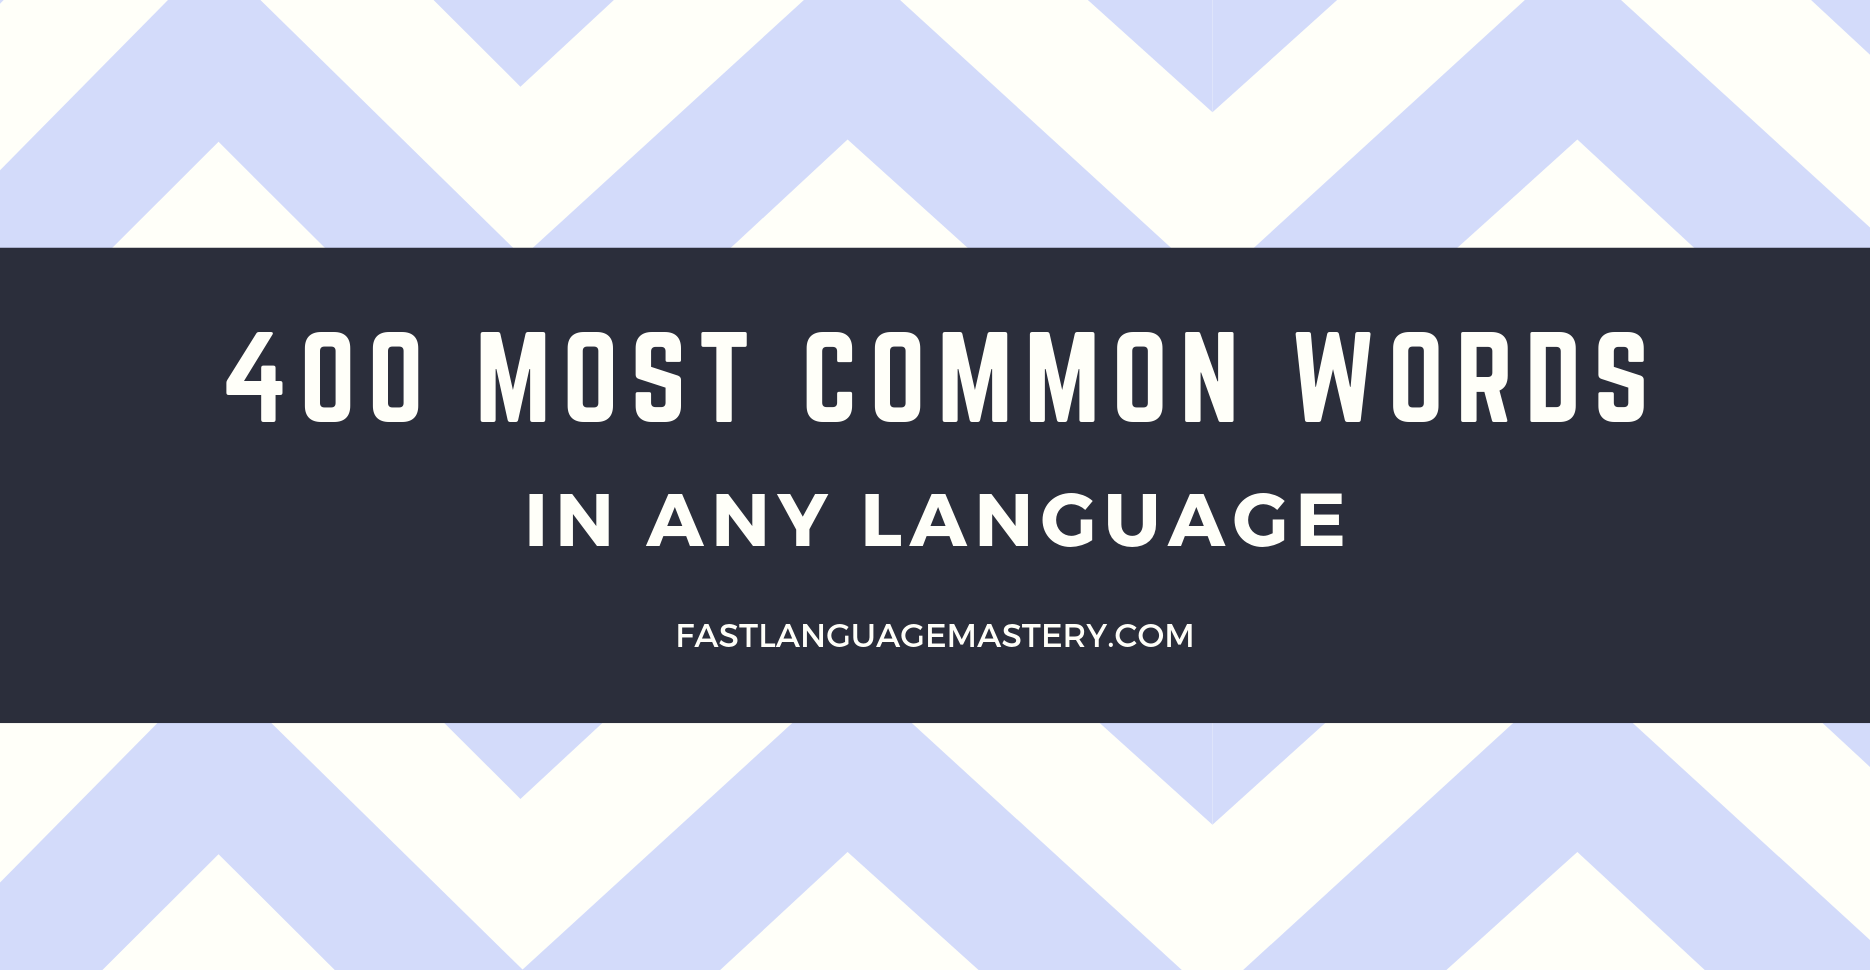 400 Most Common Words in any language